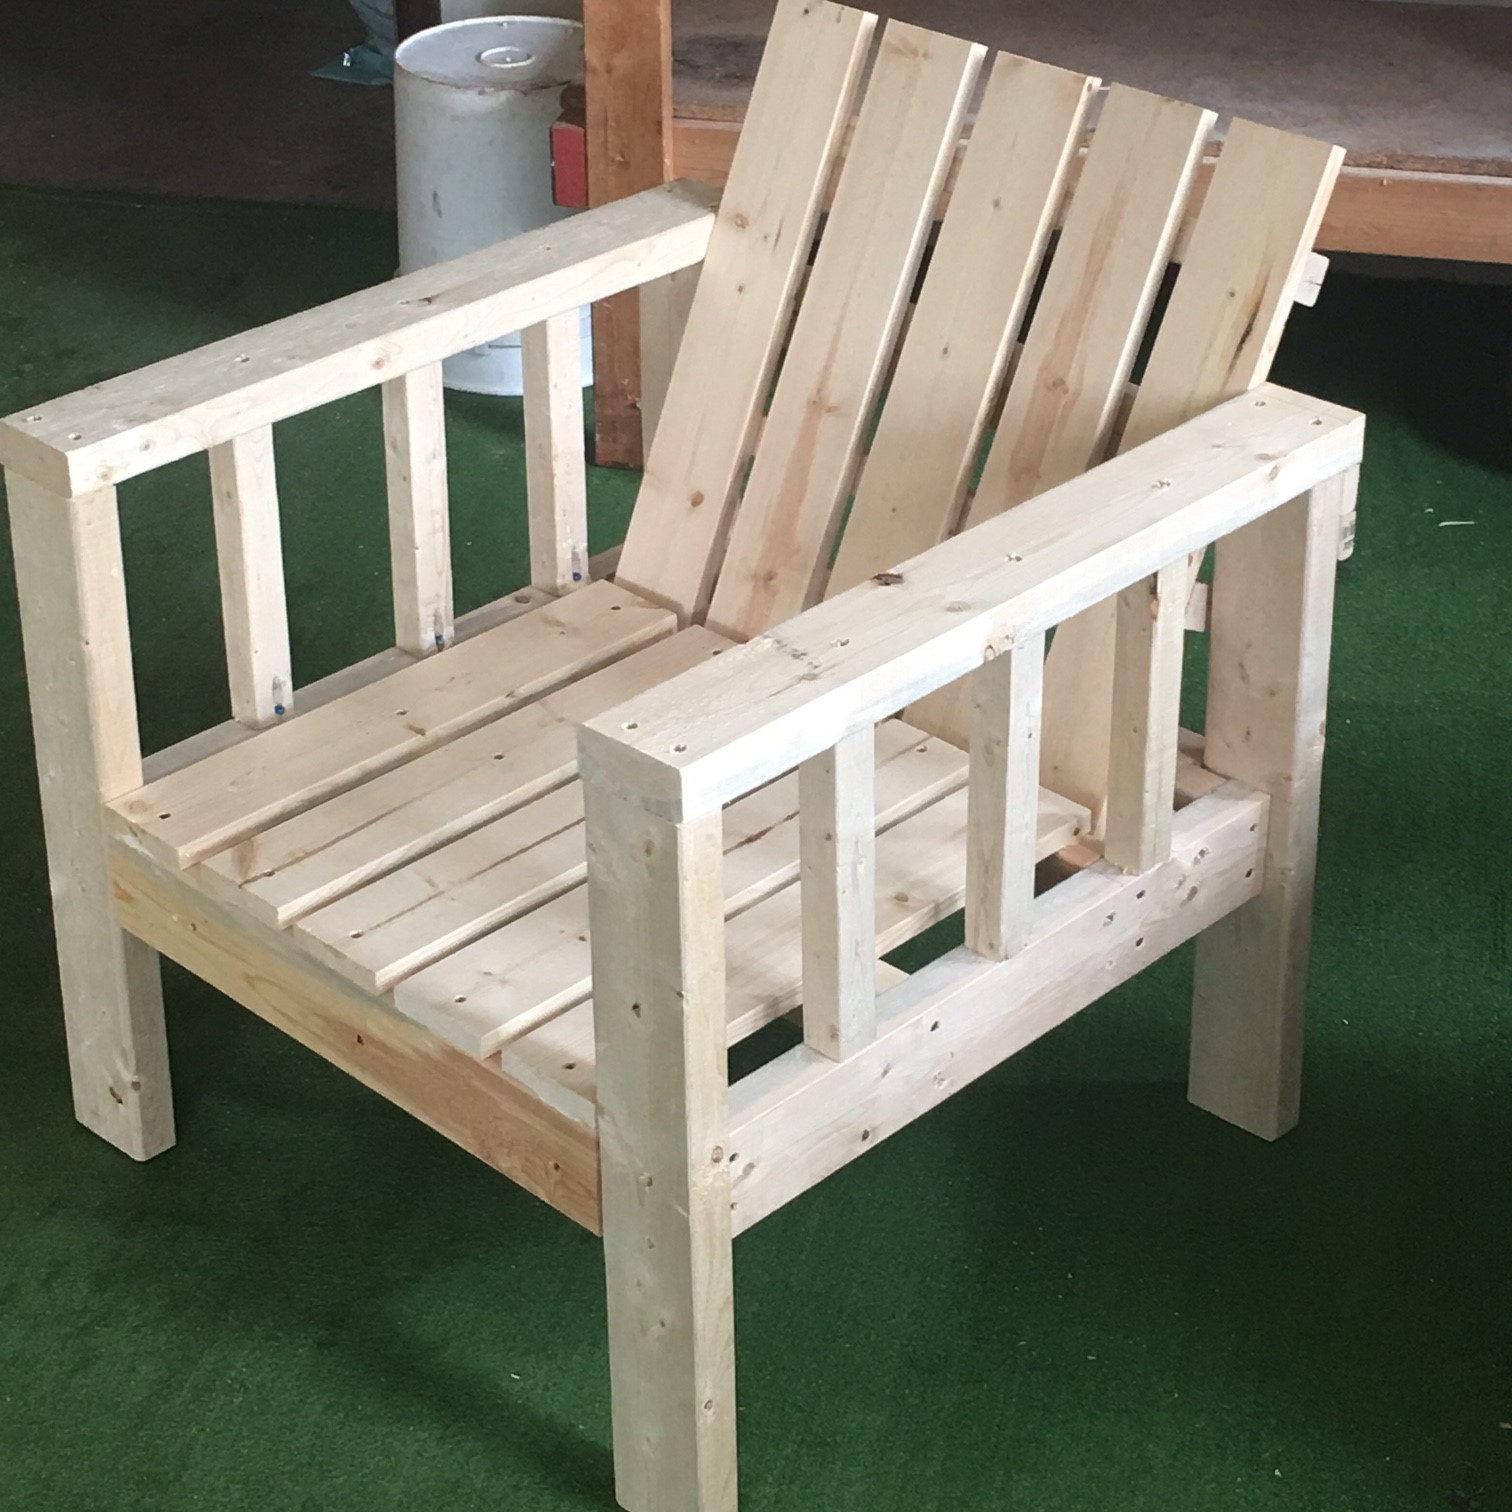 Outdoor Lounge Ana White My Simple Outdoor Lounge Chair With 2x4 Modification